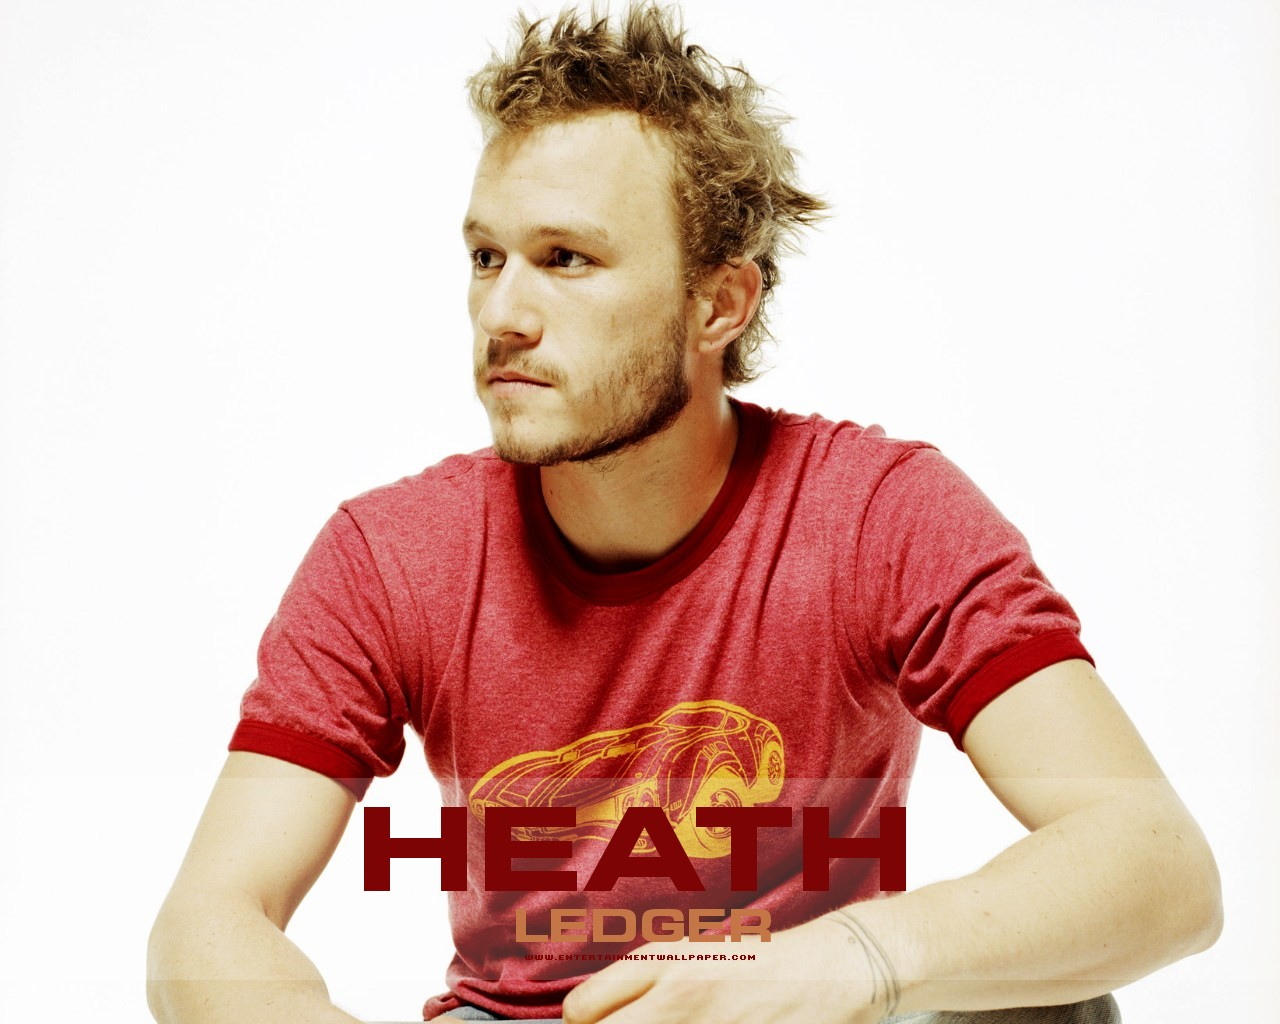 Heath Ledger 30 Thumb